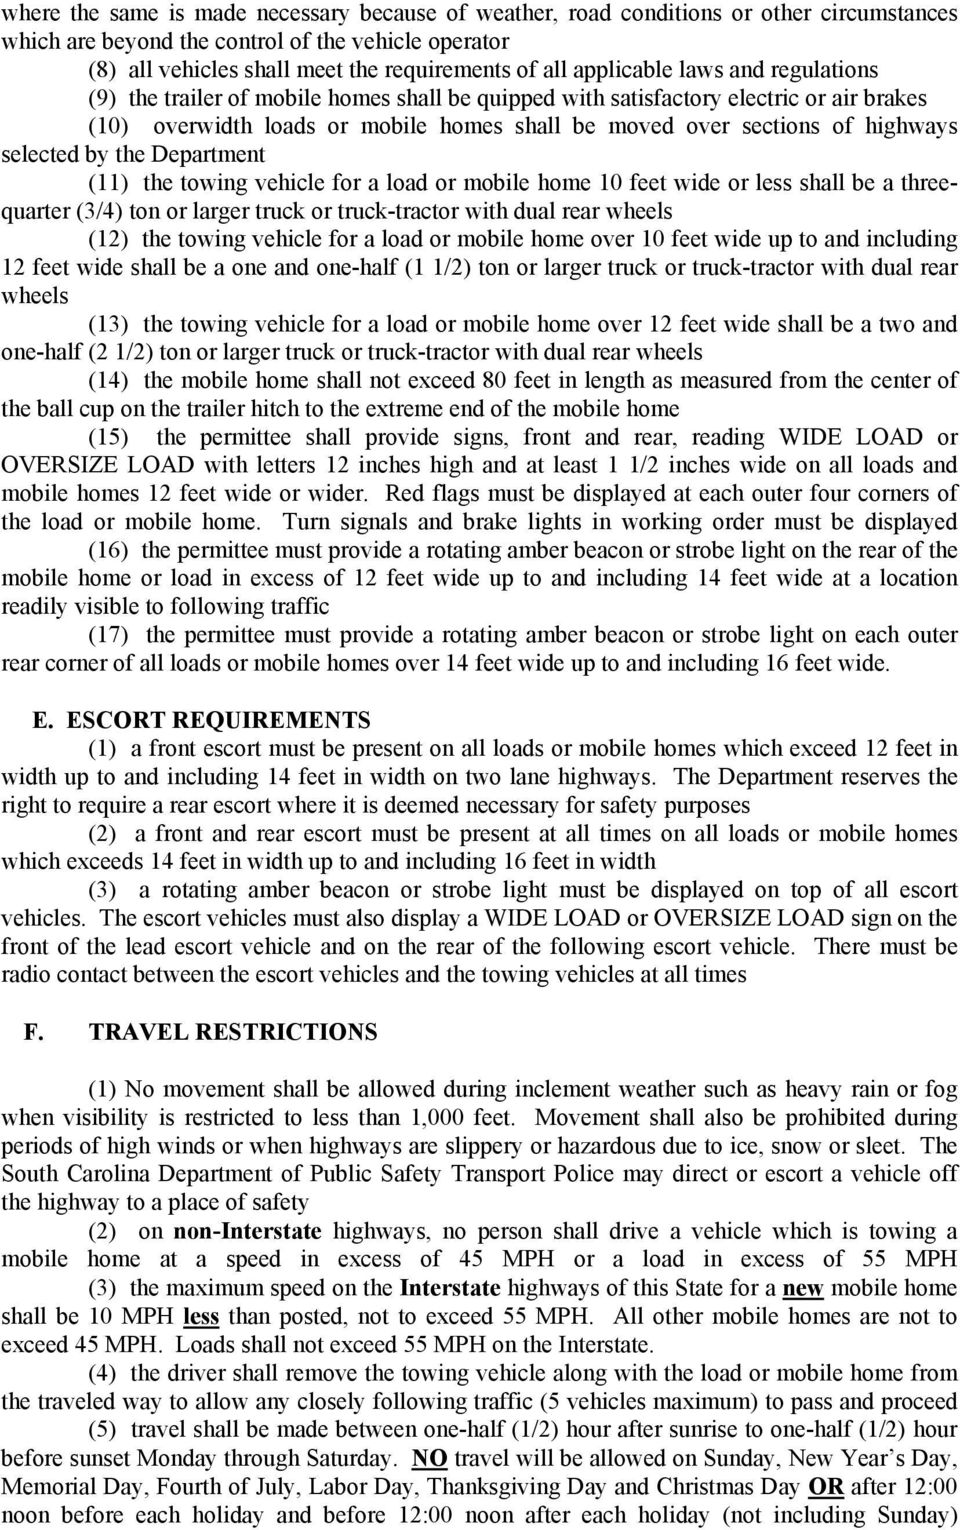 selected by the Department (11) the towing vehicle for a load or mobile home 10 feet wide or less shall be a threequarter (3/4) ton or larger truck or truck-tractor with dual rear wheels (12) the